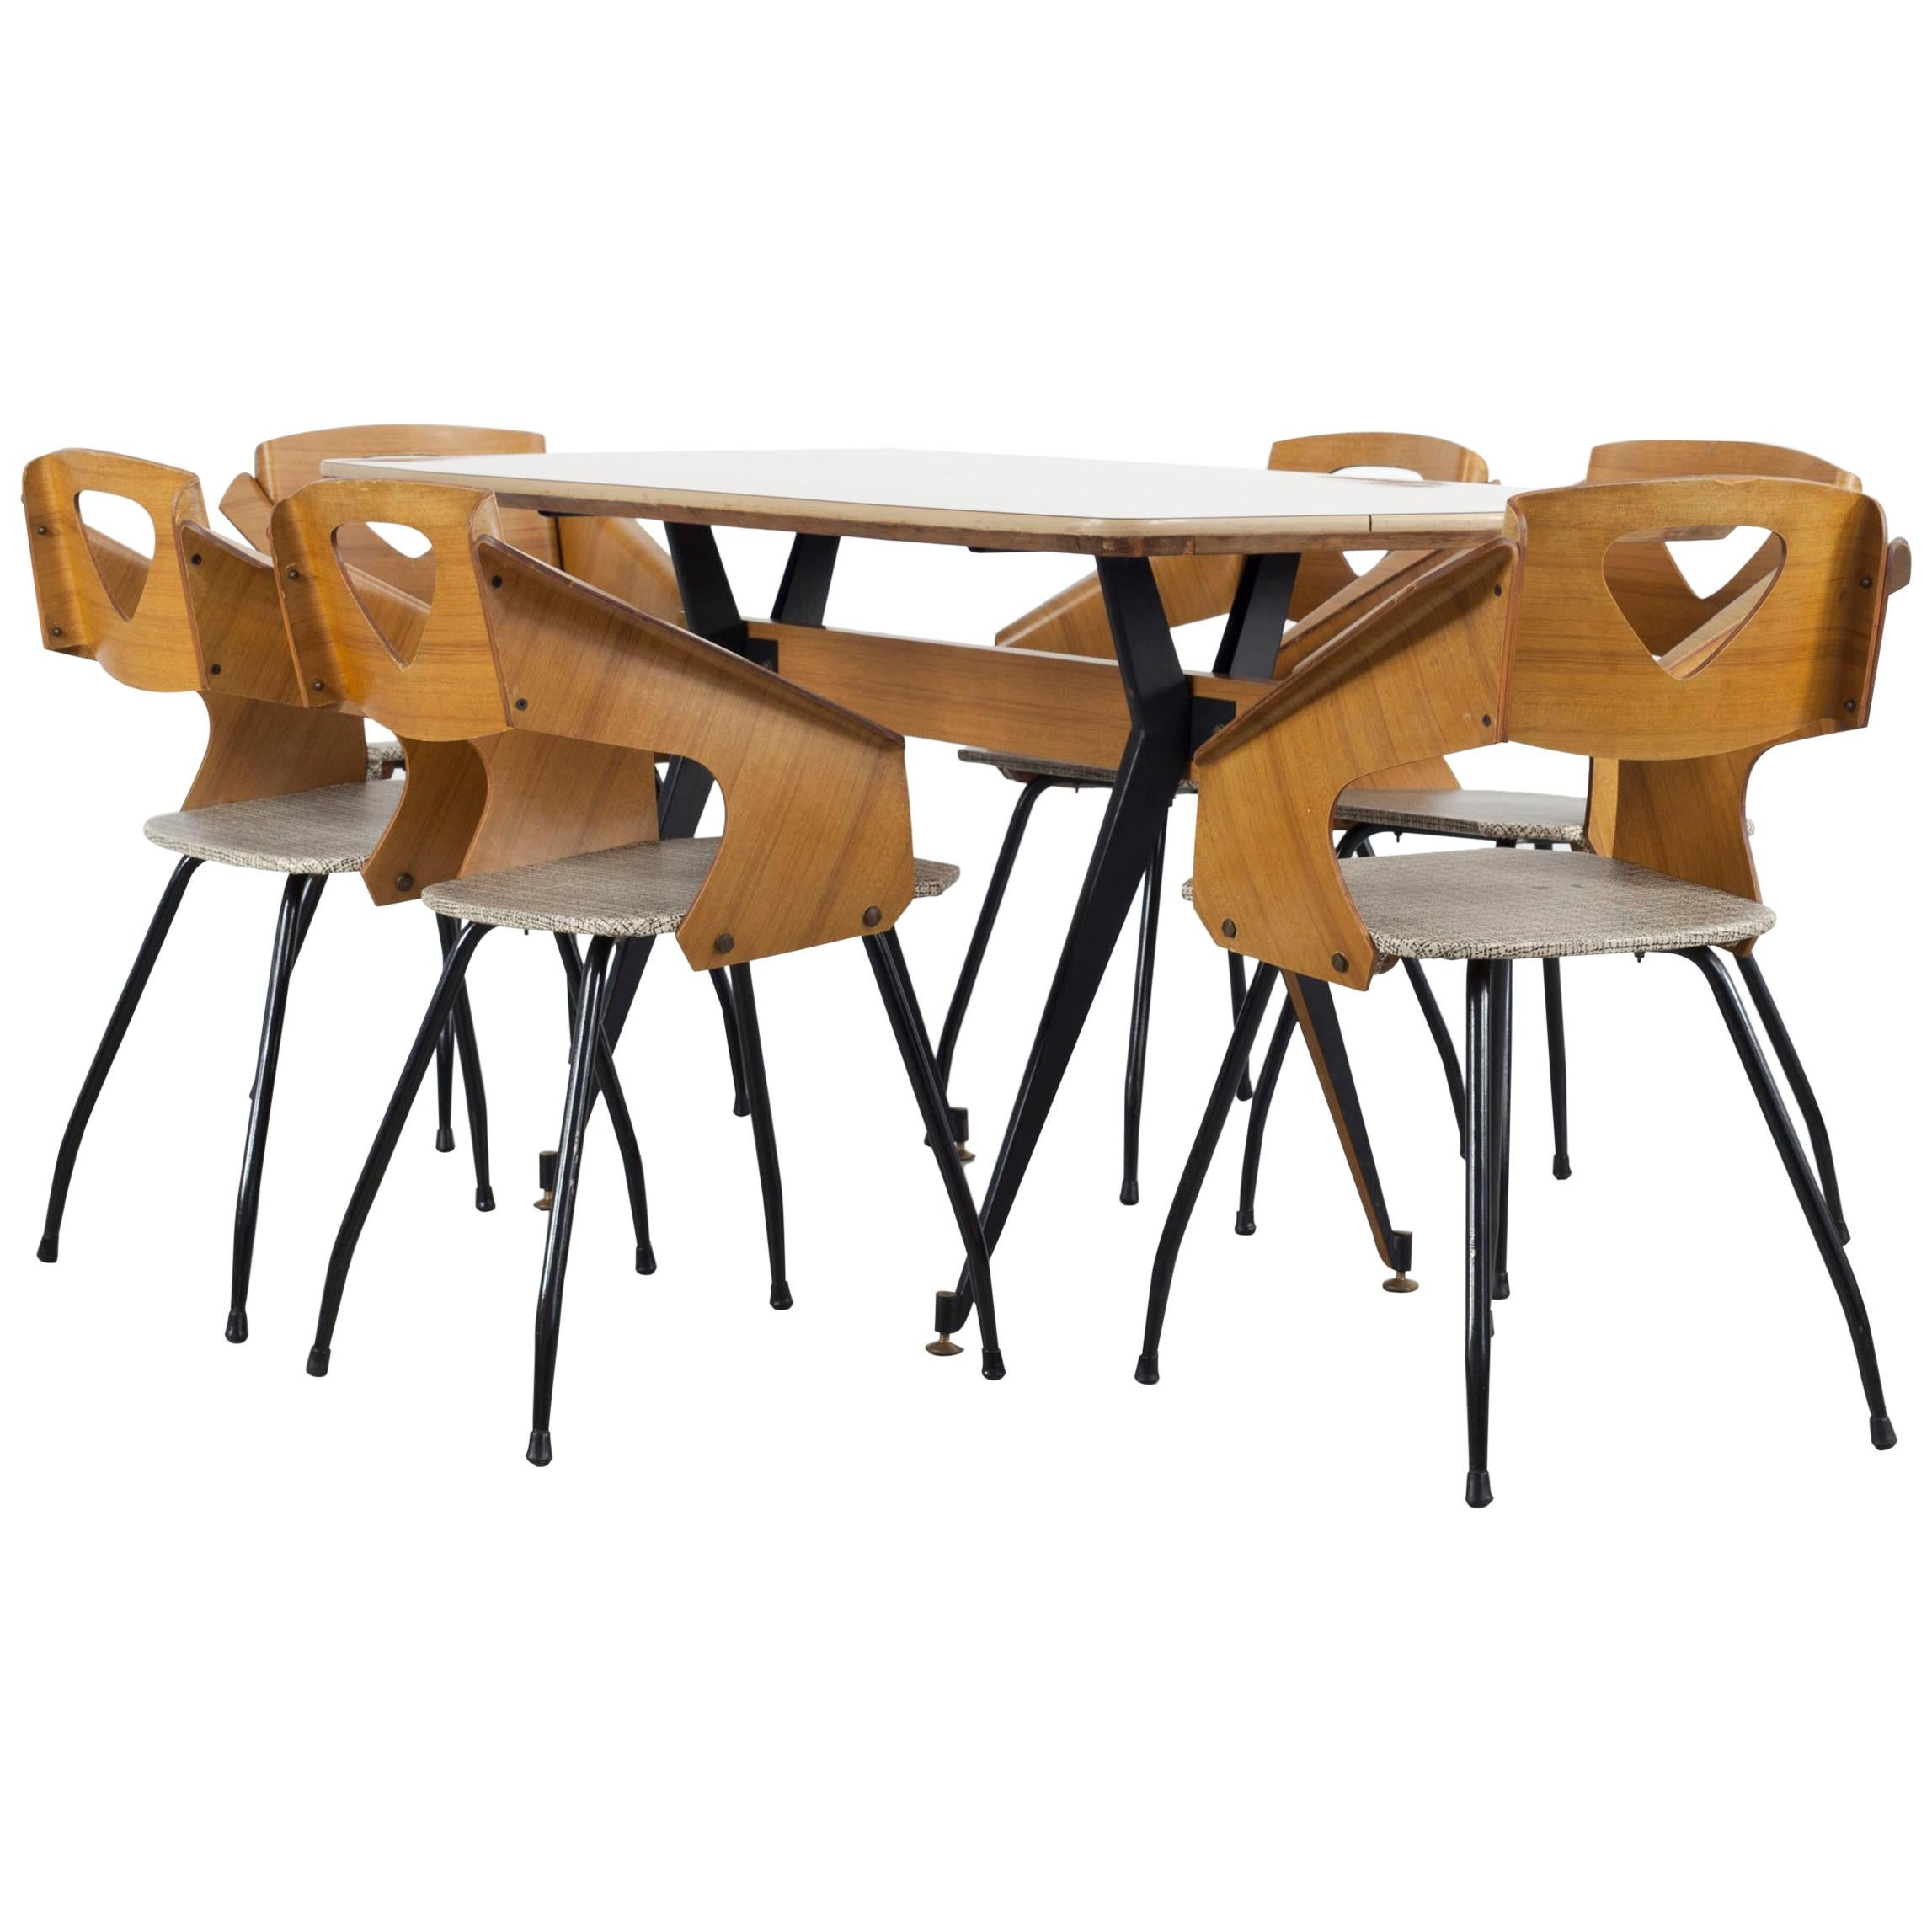 Set of 6 Dining Chairs and Table by Carlo Ratti, 1950s